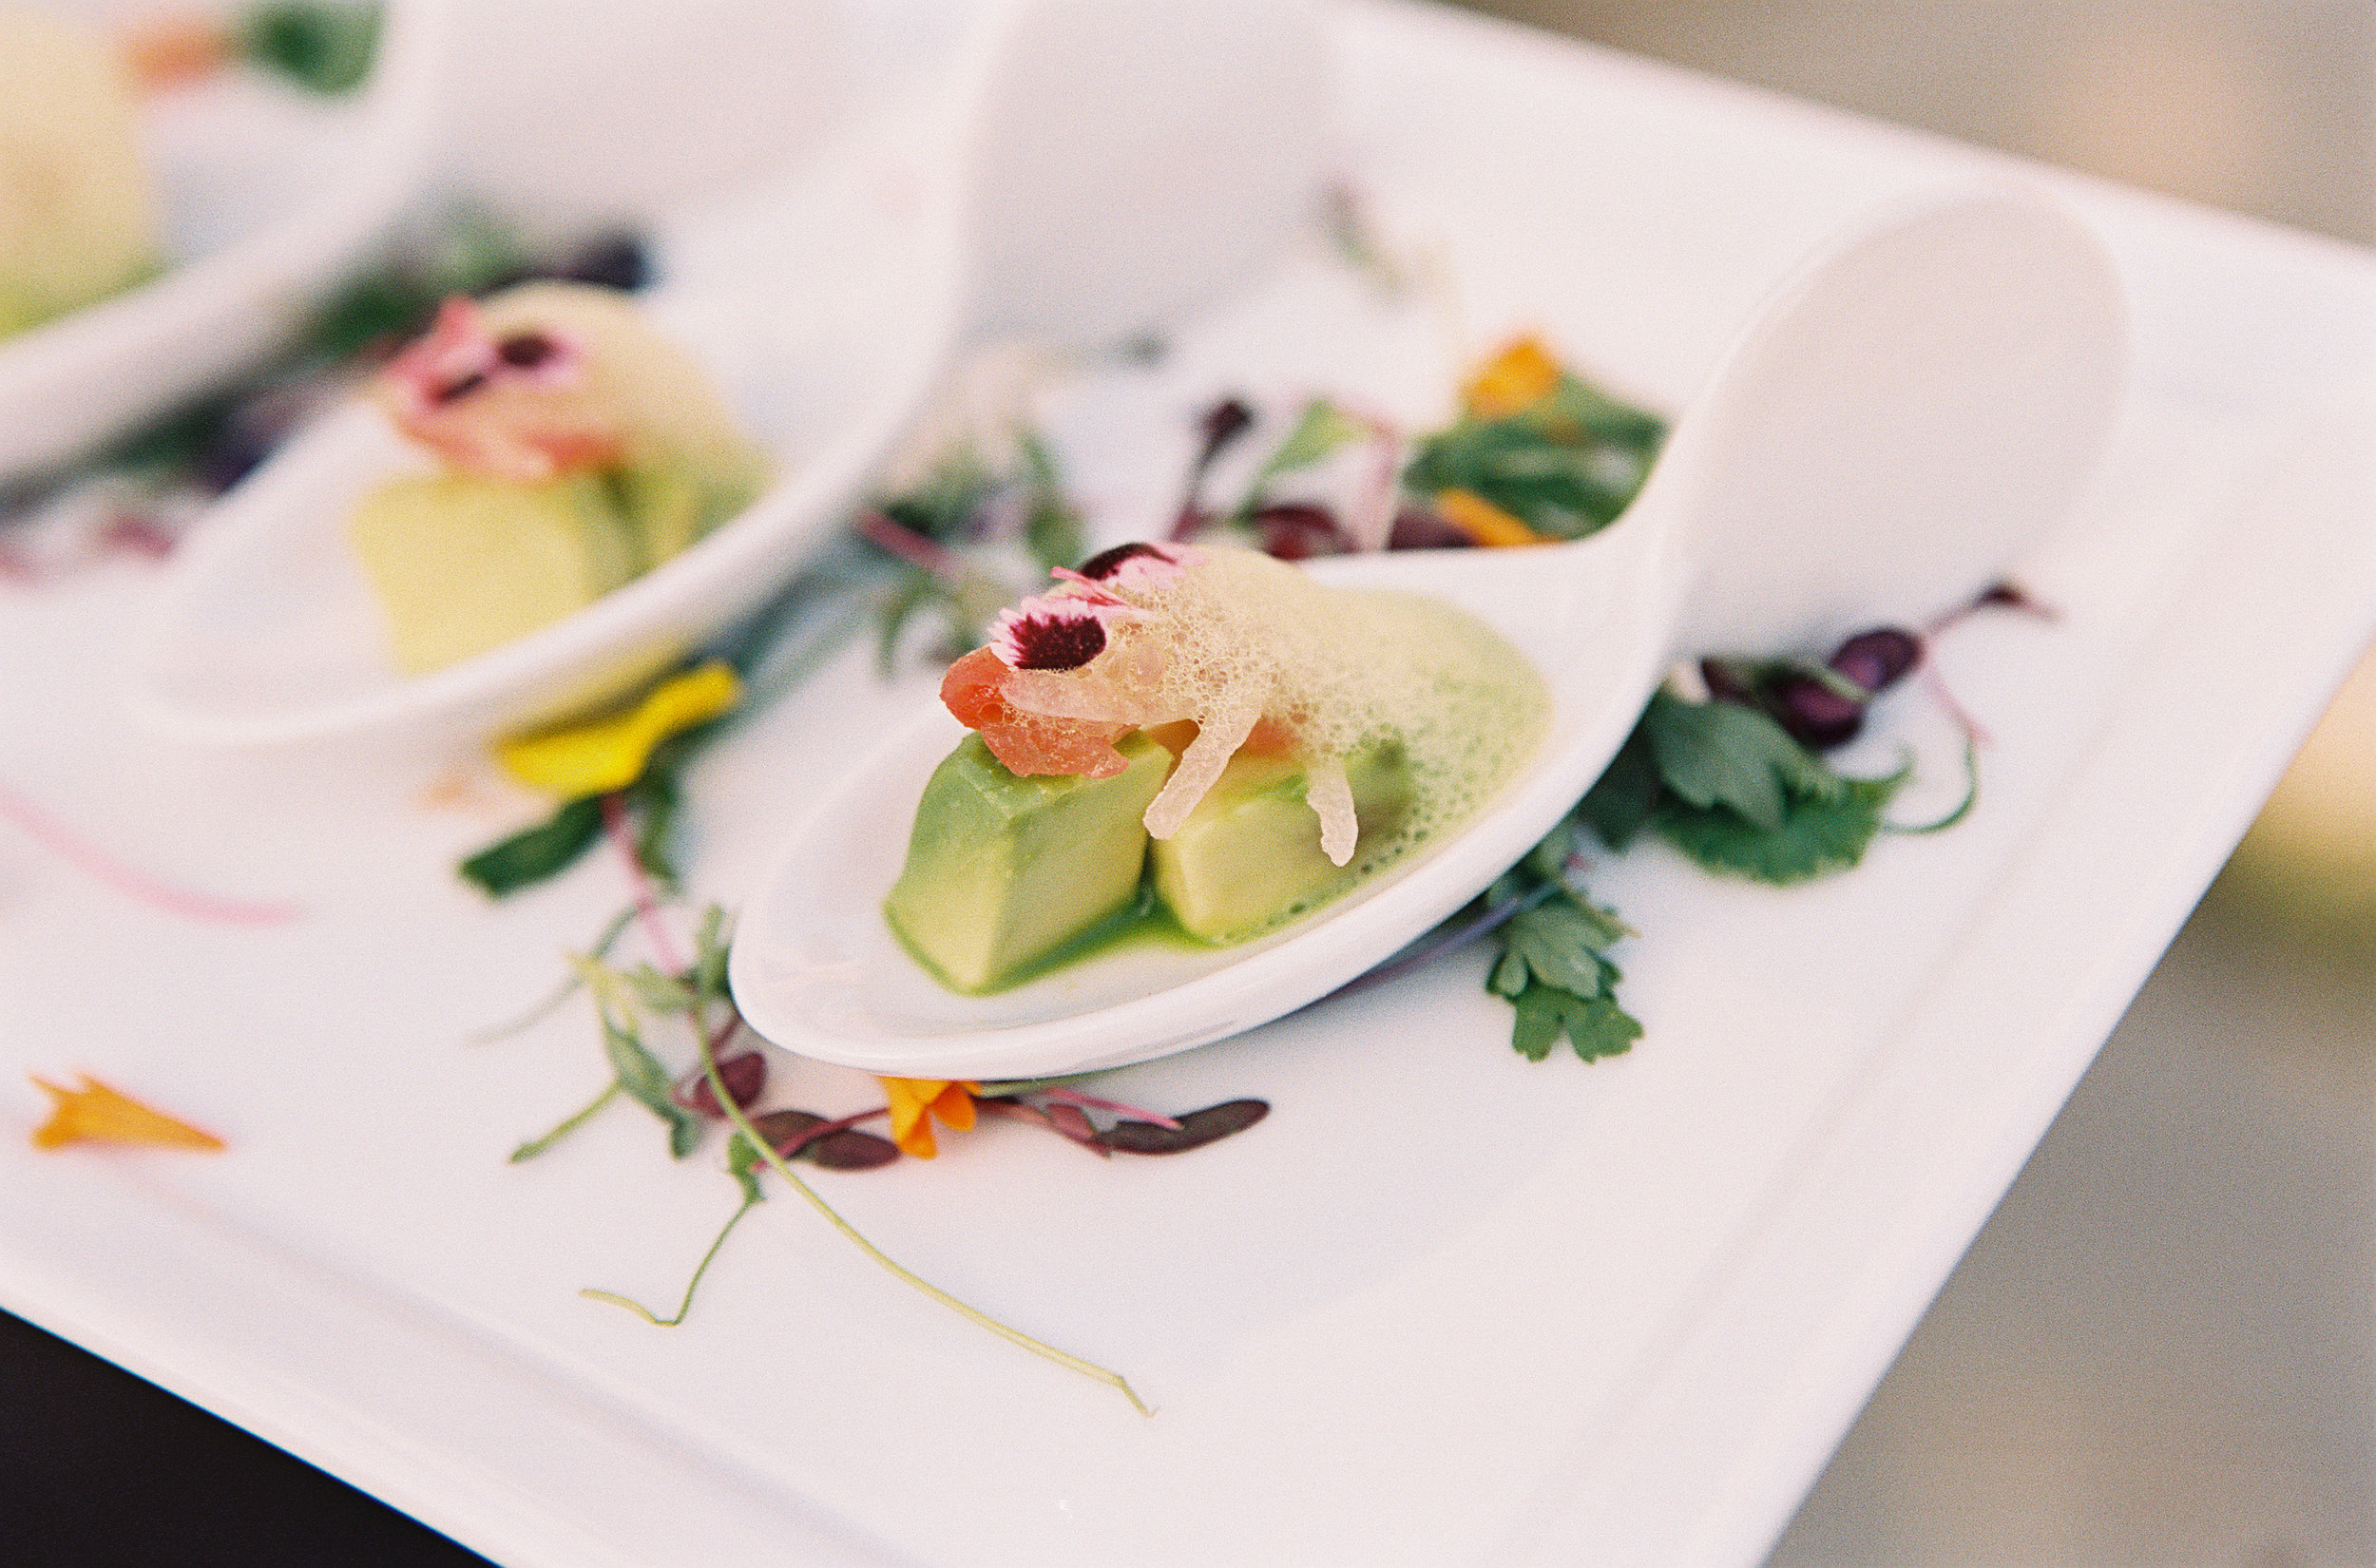 %22deconstructed guacamole%22 avocado cube, heirloom tomato soaked shallot fingerlime, cilantro bubbles.jpg